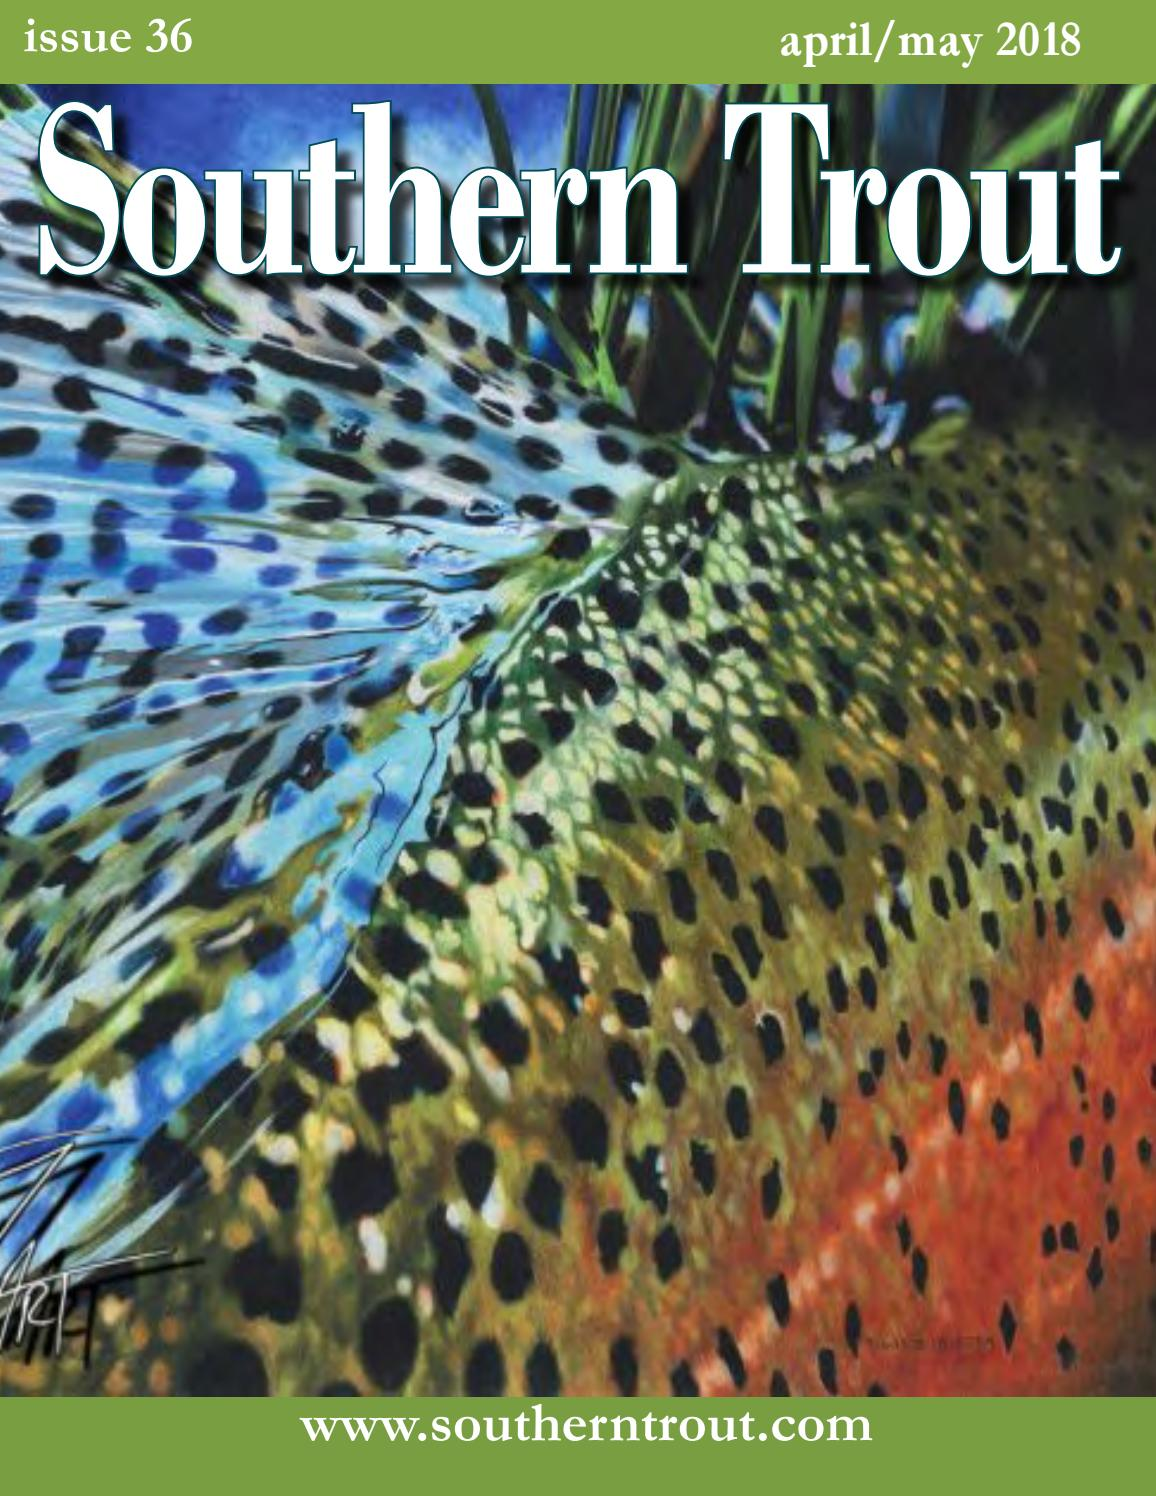 Trout/'A Control Outlaw